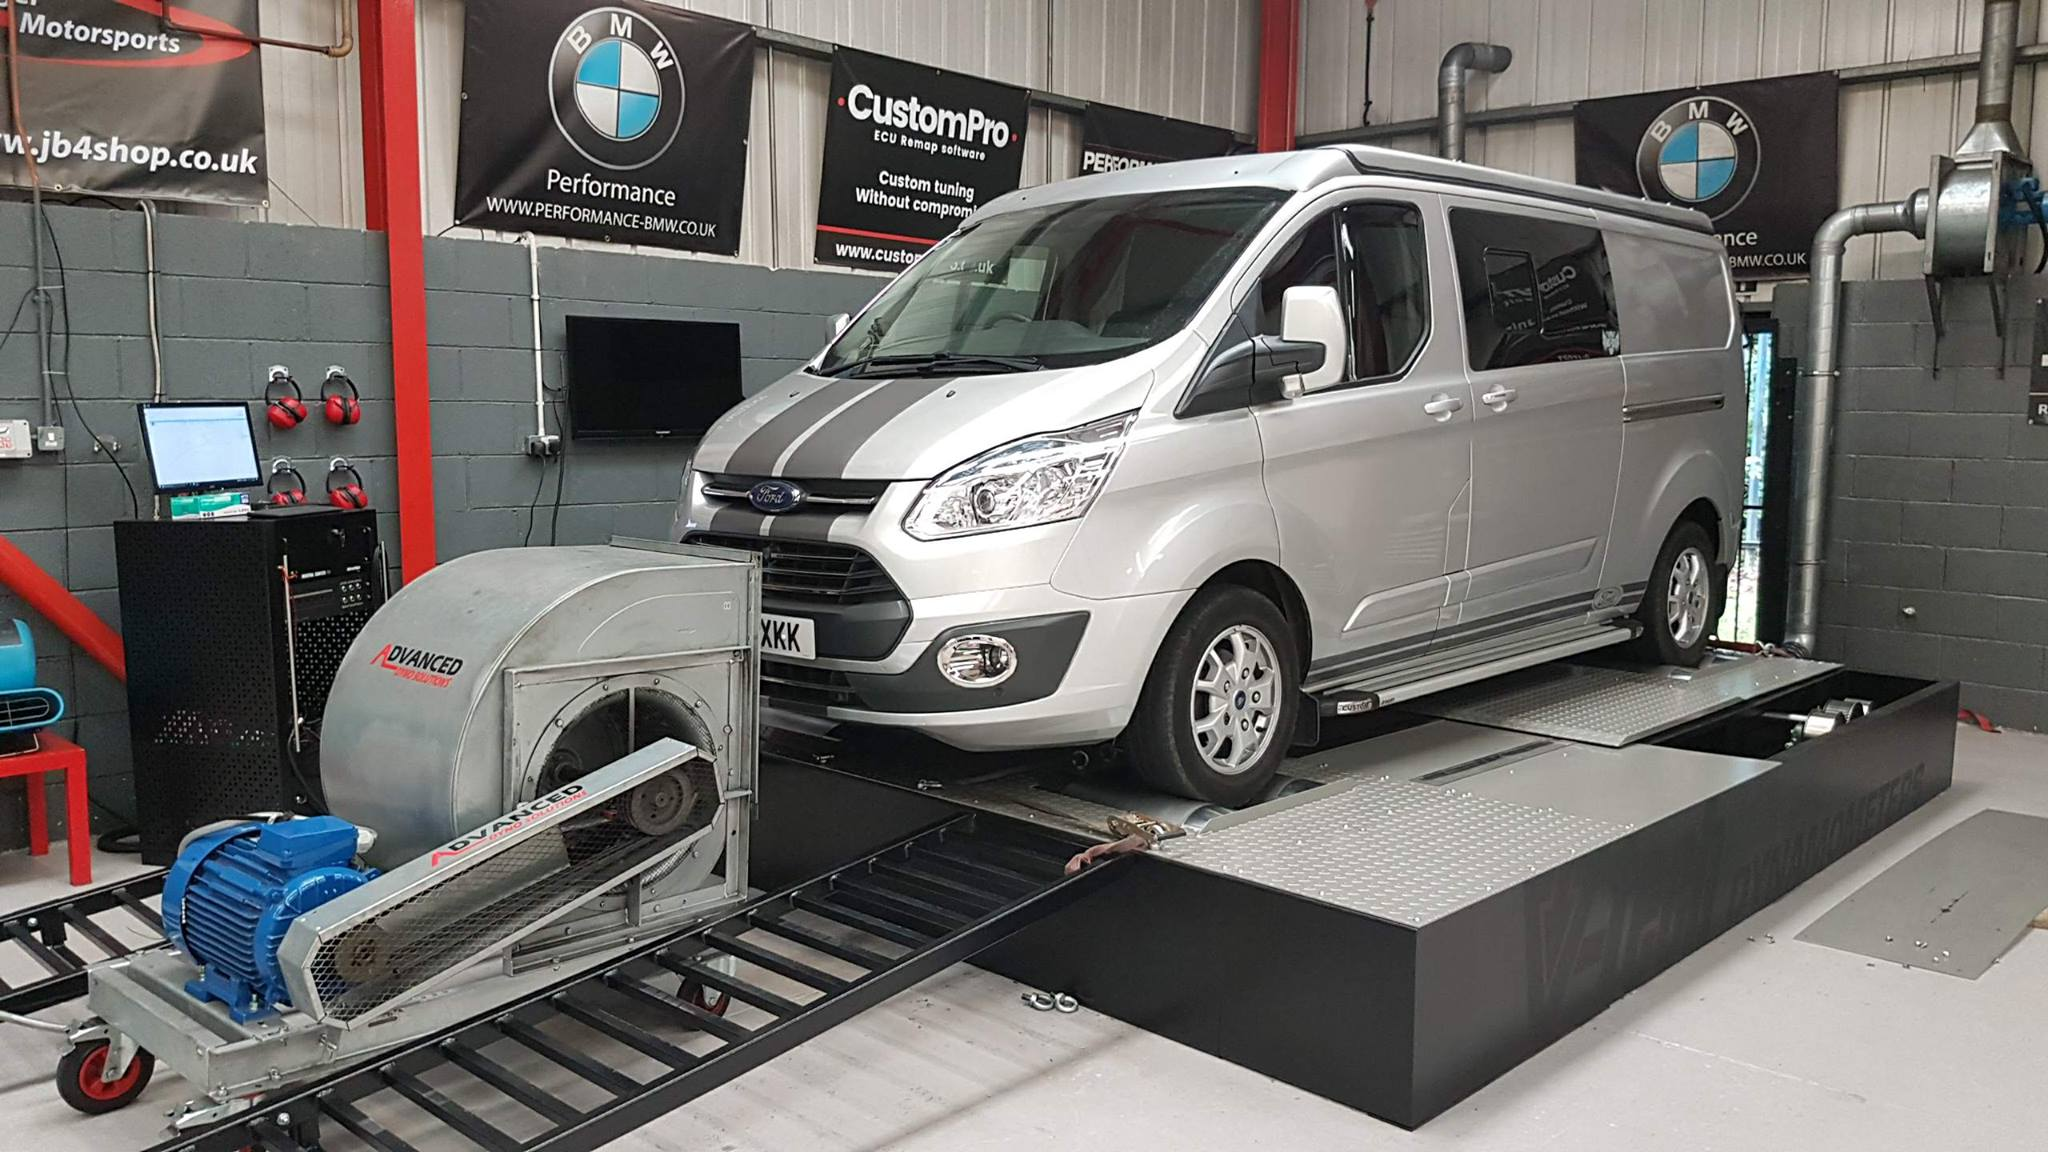 Ford Transit 2.2 - CustomPro remap